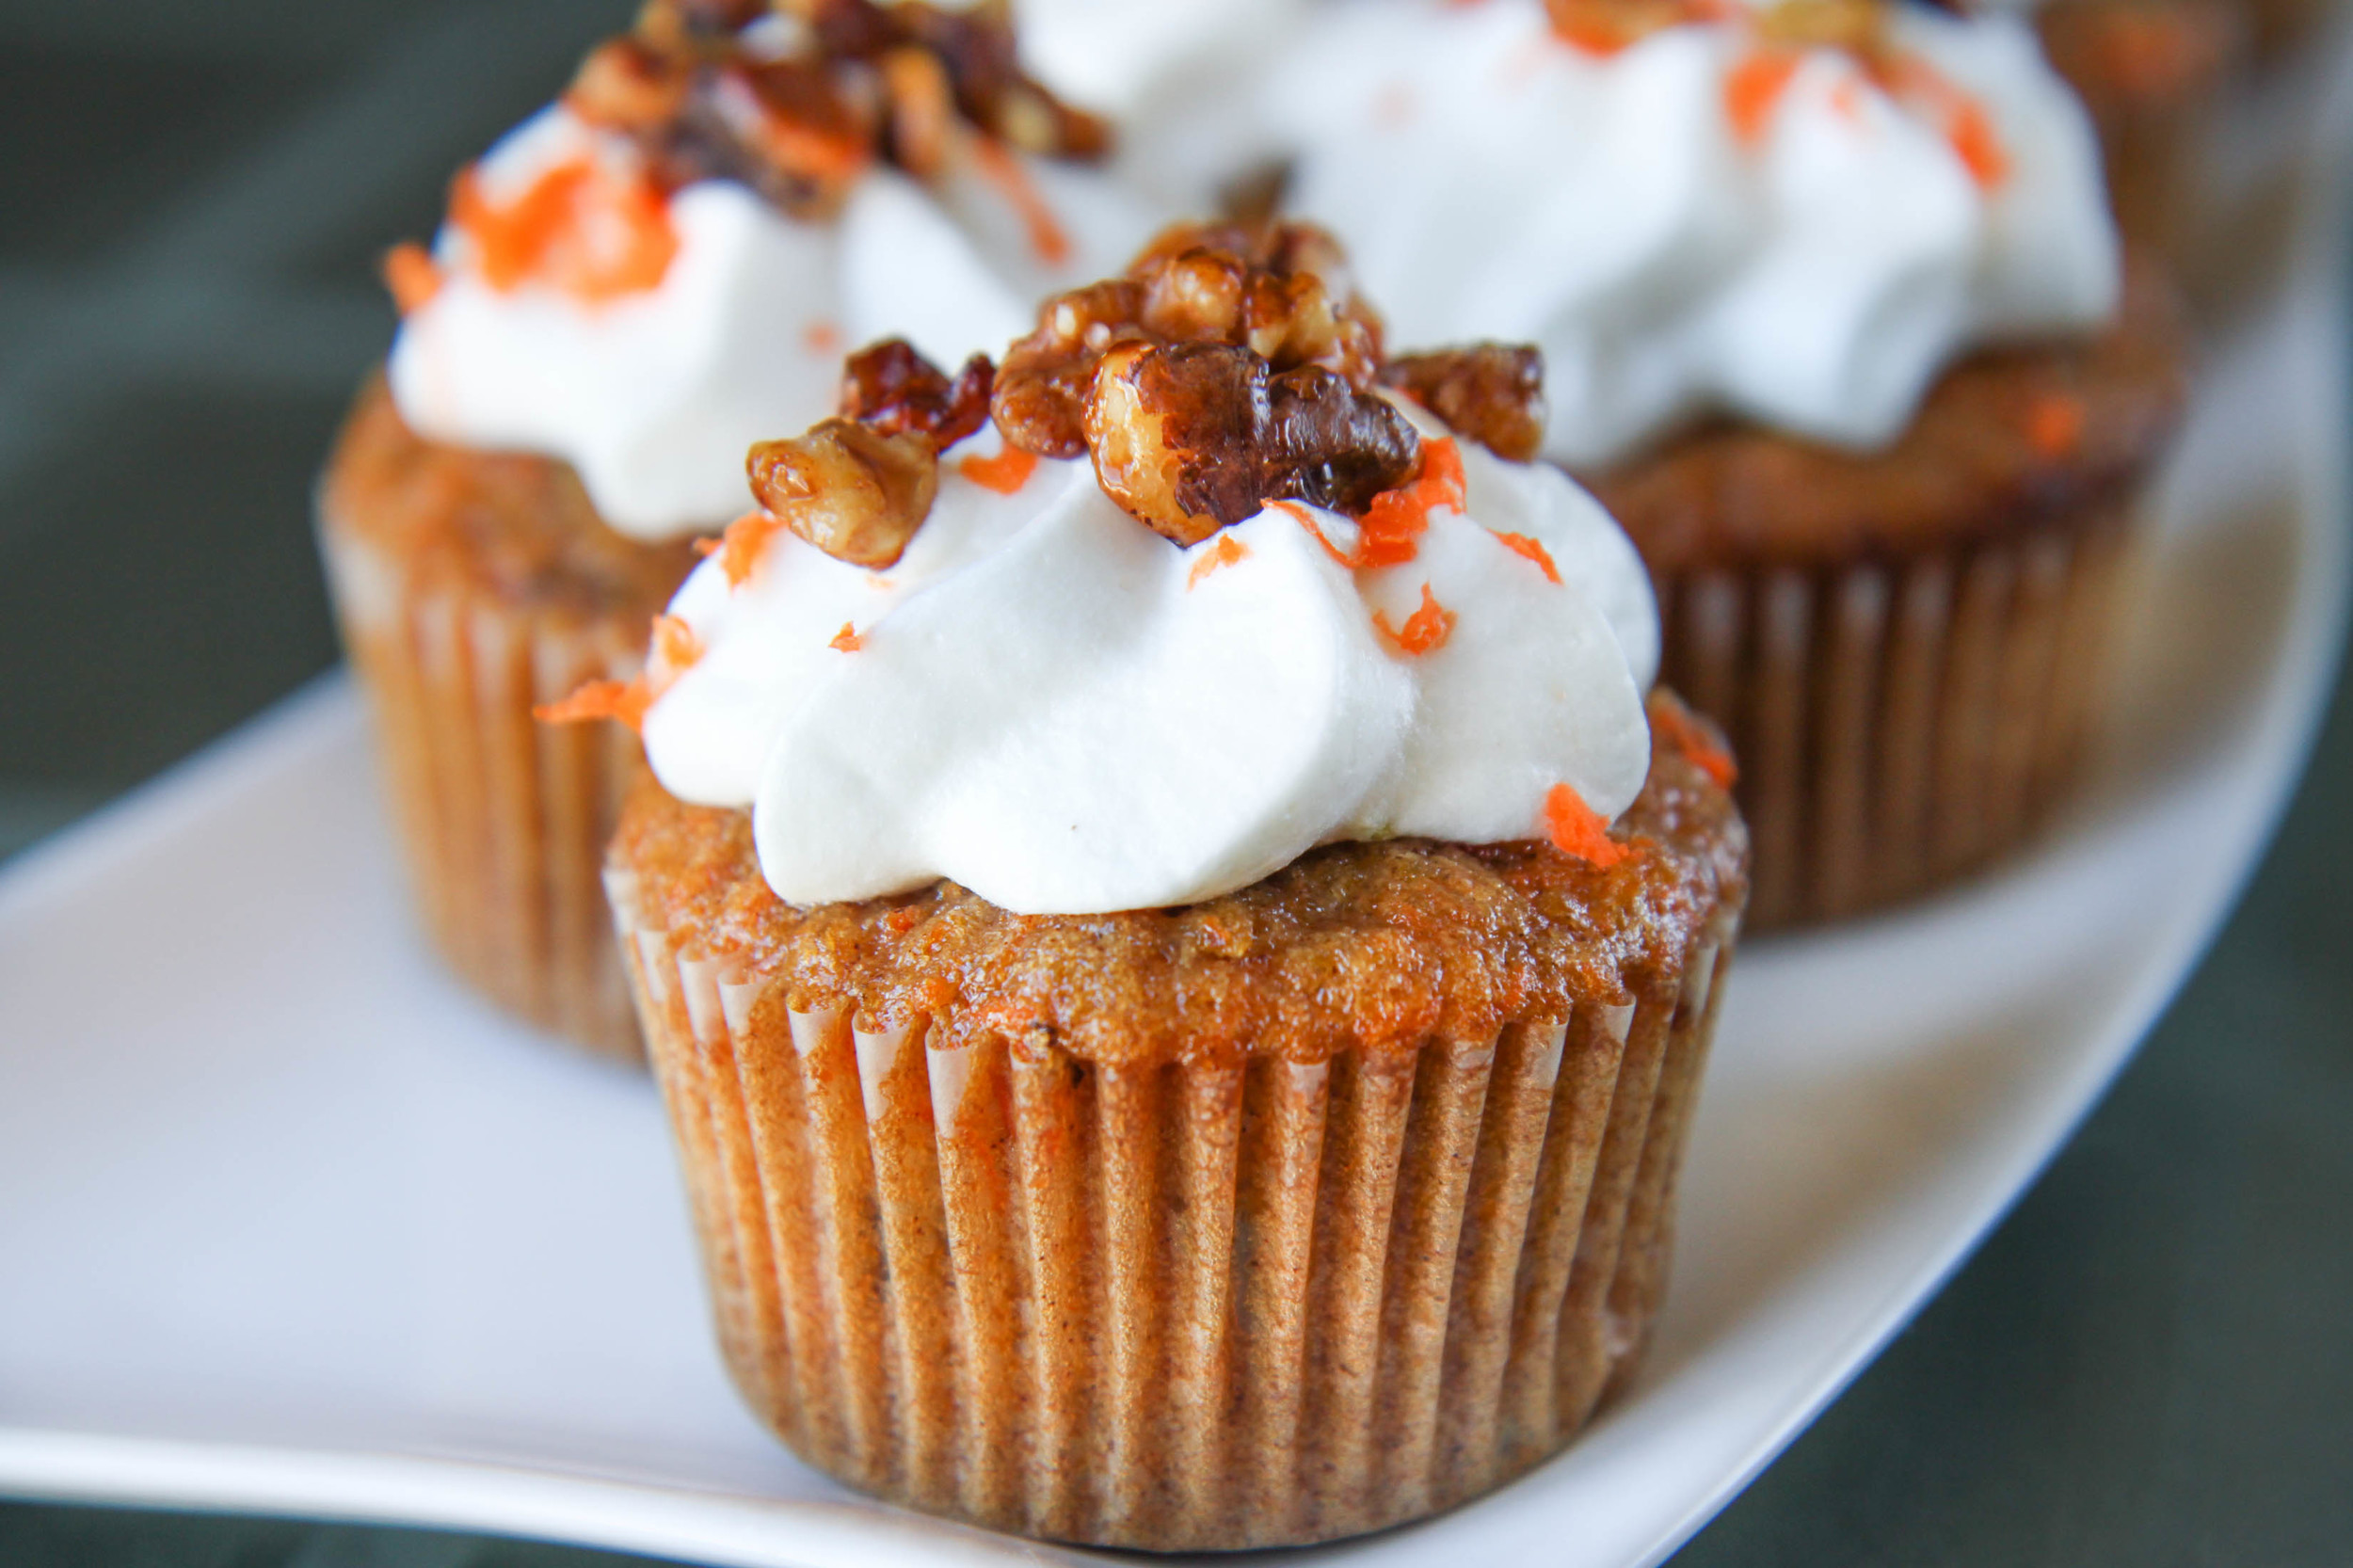 Carrot Cupcake with Caramelized Walnuts